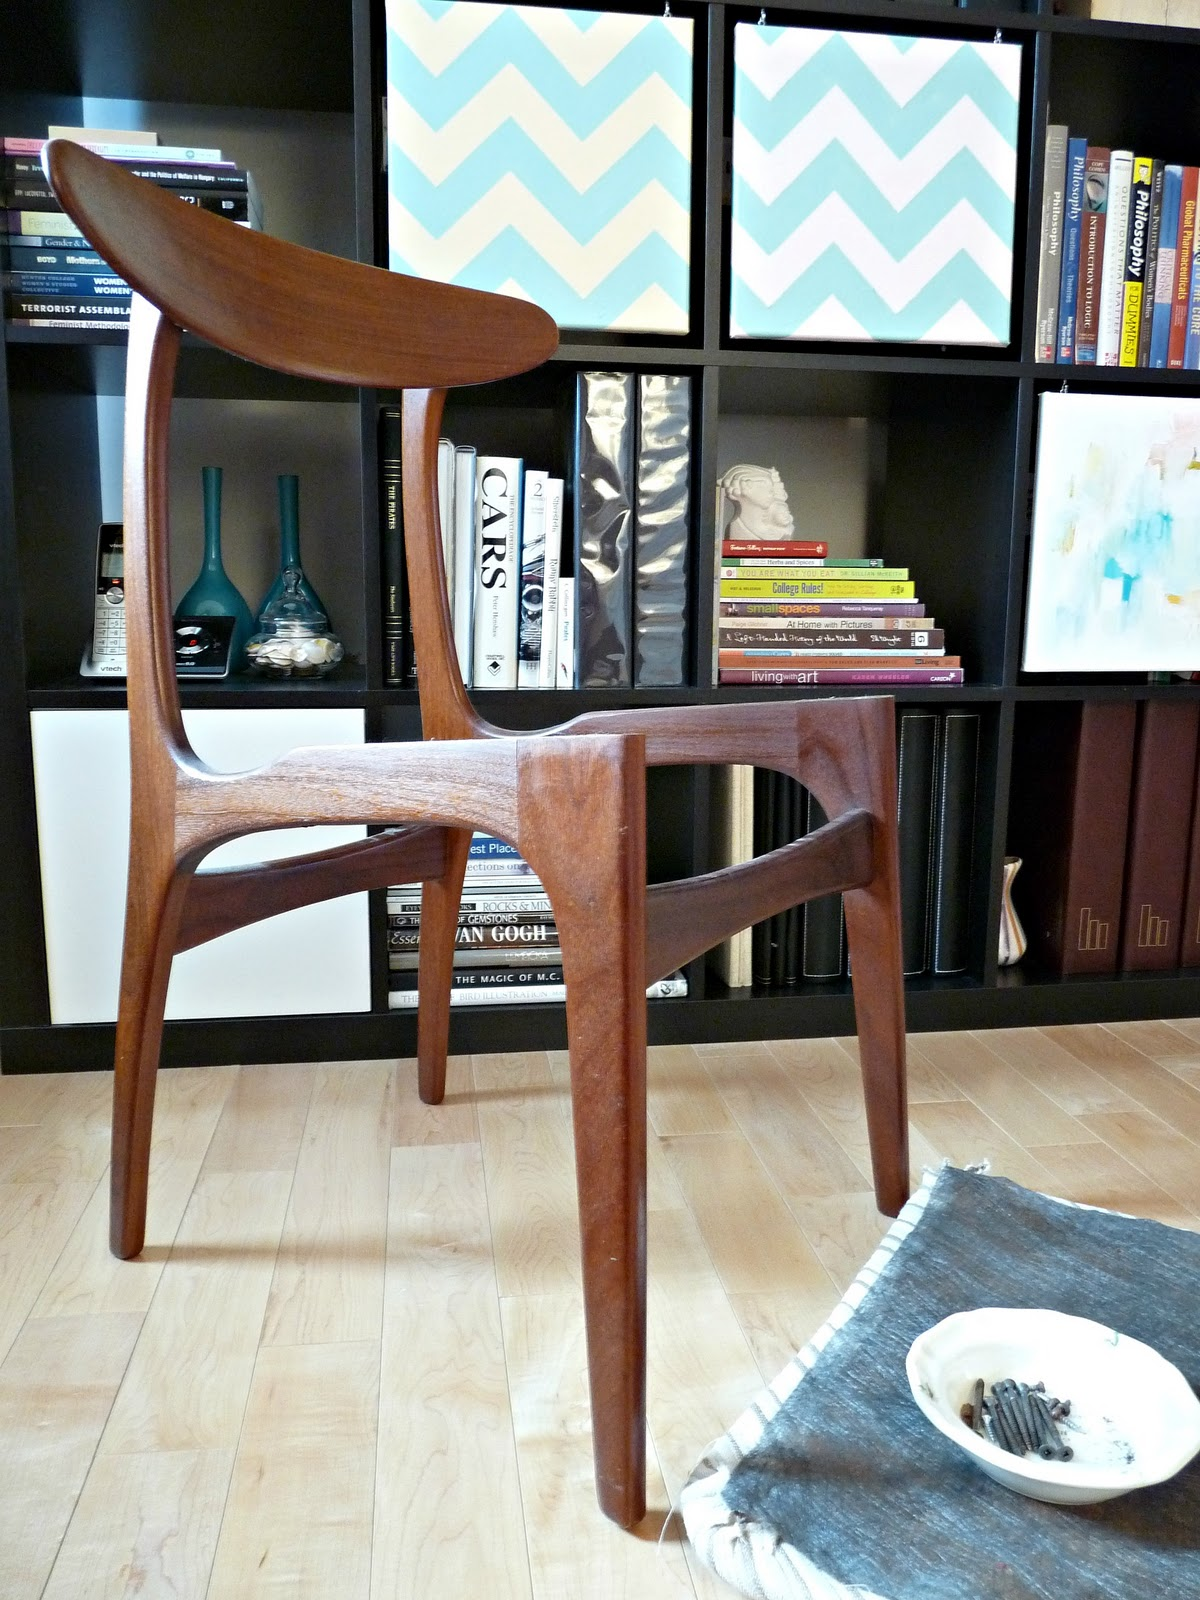 upholstering a chair chairpro europe how to reupholster dining chairs diy houndstooth